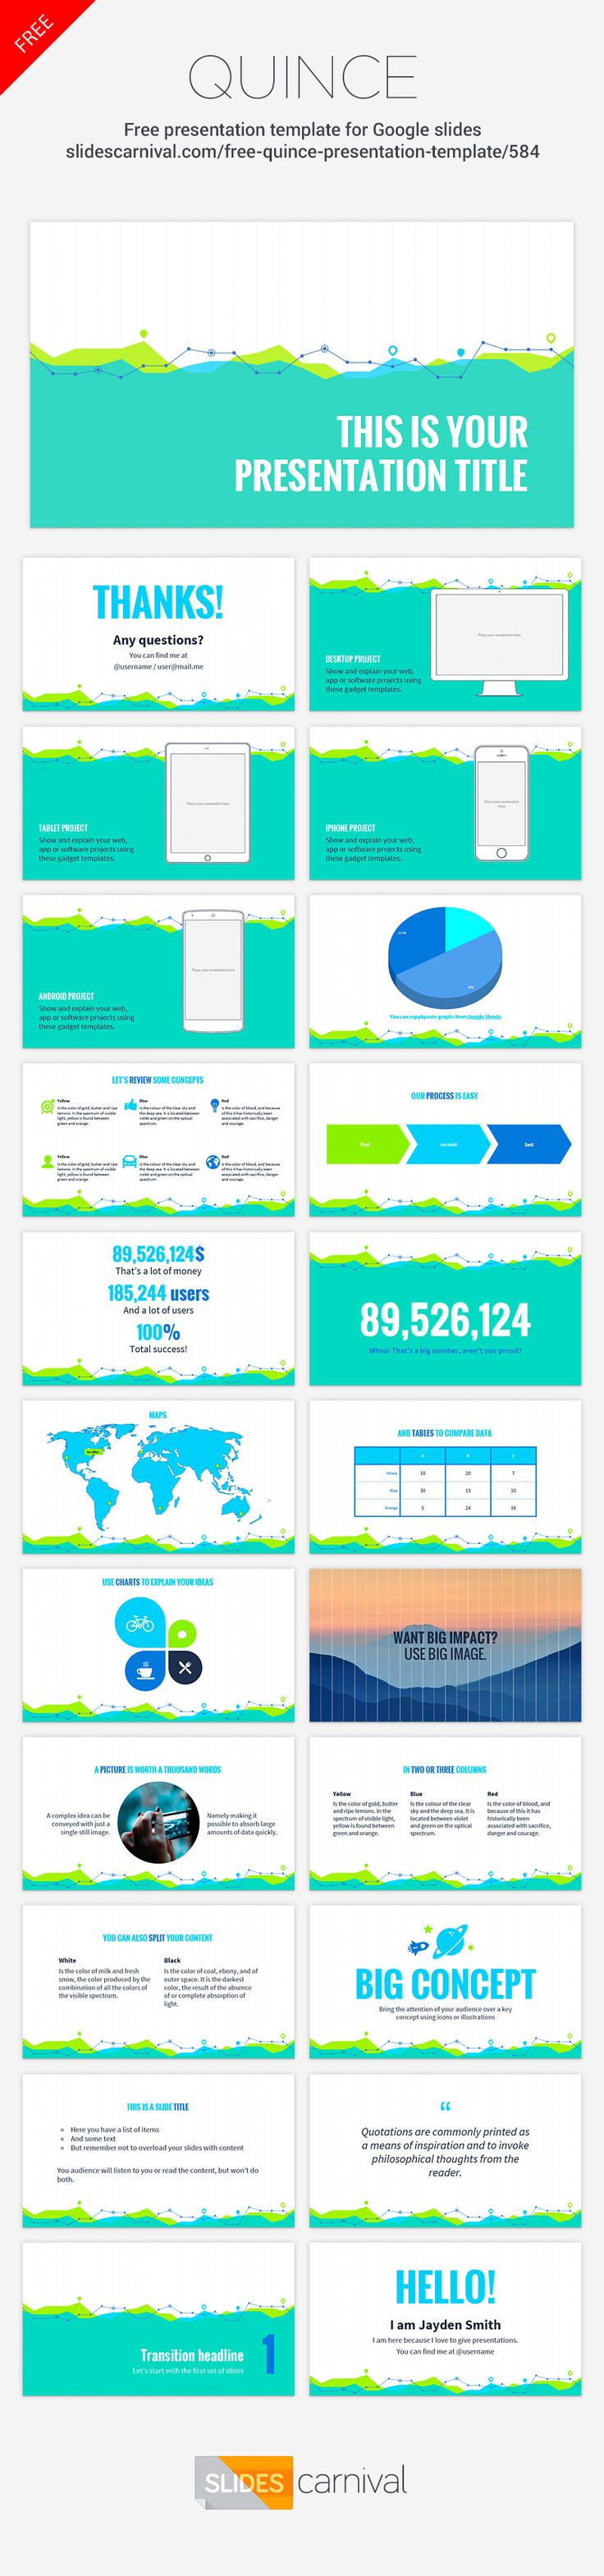 best images about presentation templates presentation template colorful graph background